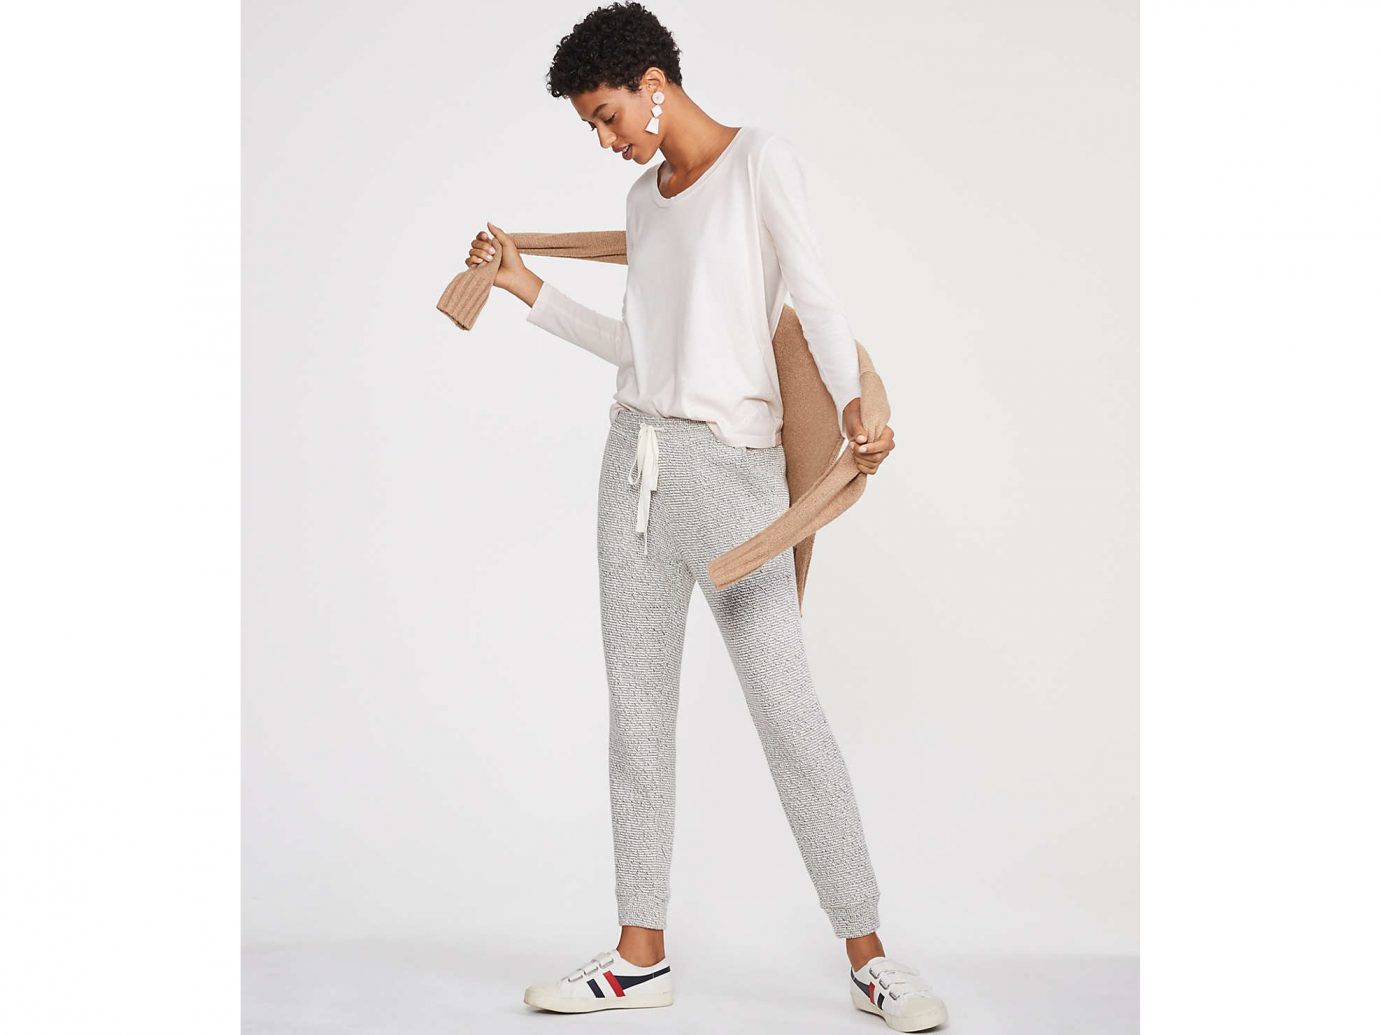 Elevated Sweatpants: Lou & Grey Ridged Upstate Sweatpants